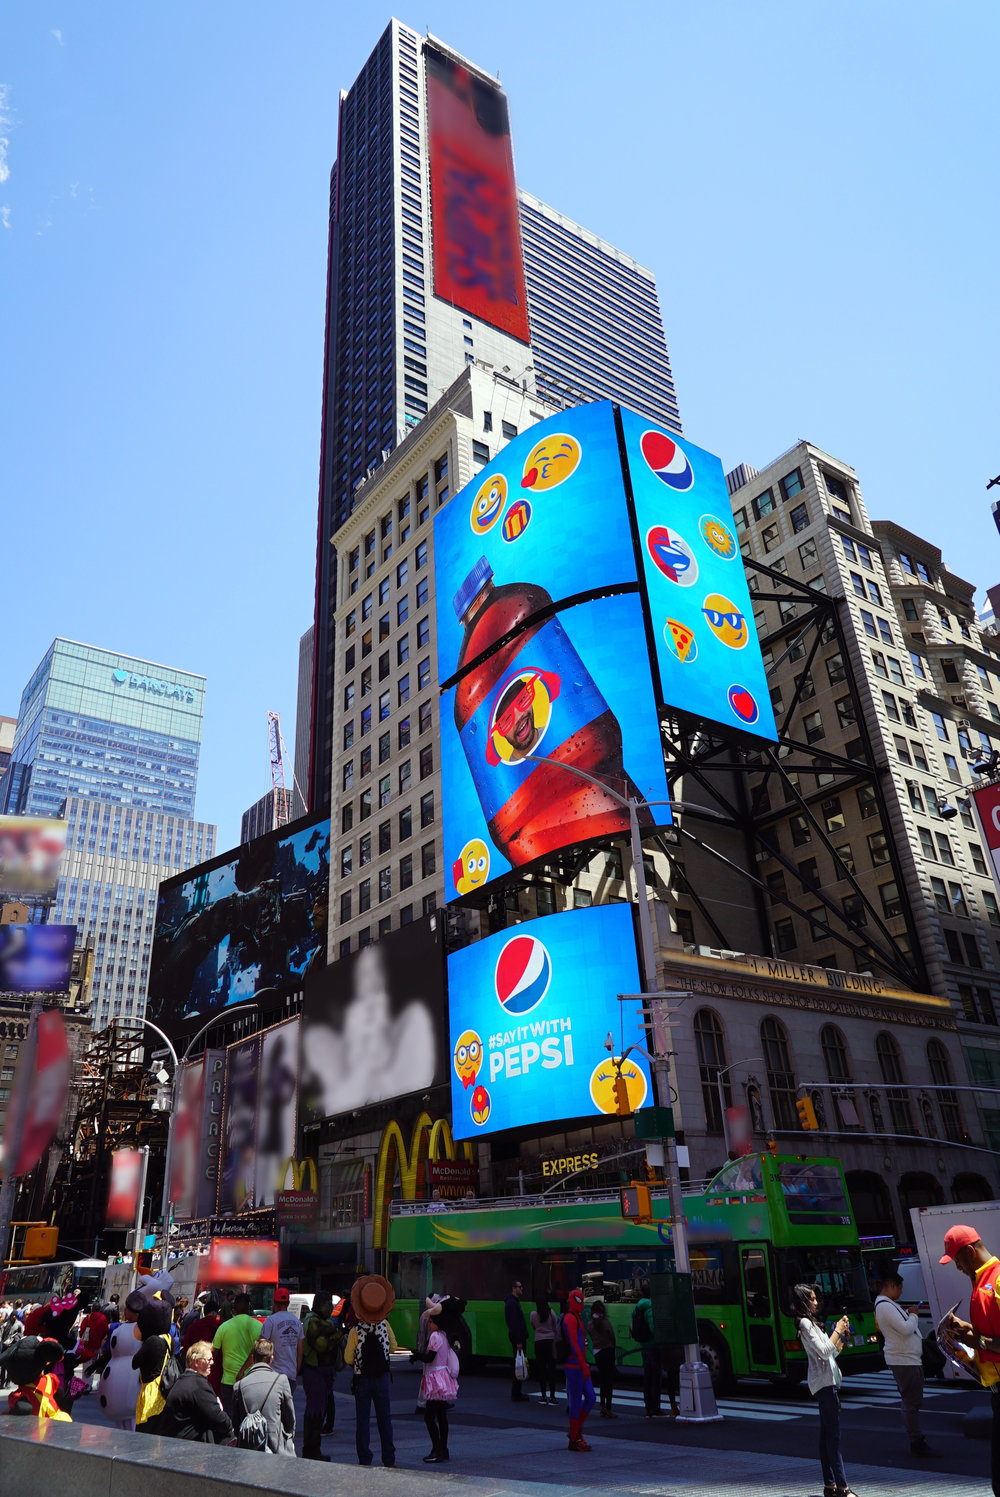 Pepsi, Pepsimoji Times Square We turned over 800 New Yorkers (read: tourists) into Pepsi emojis to launch #SayItWithPepsi